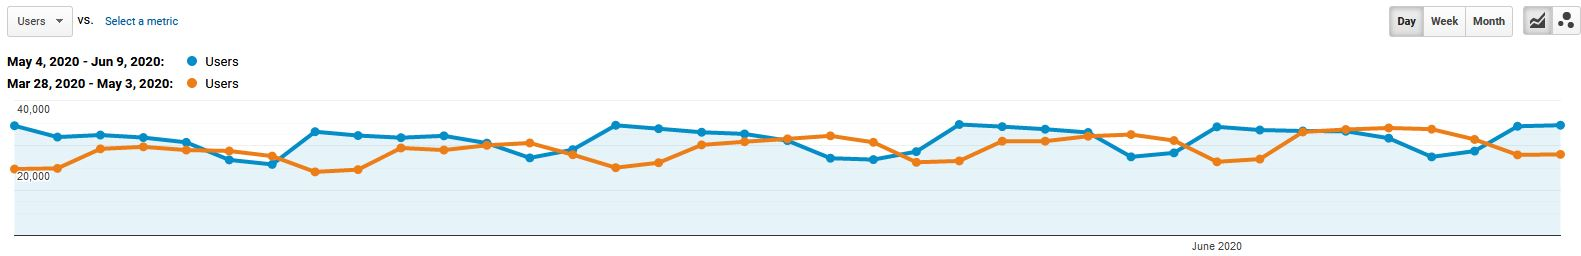 DSS User traffic trend pre- and post- May 2020 Google algorithm update.